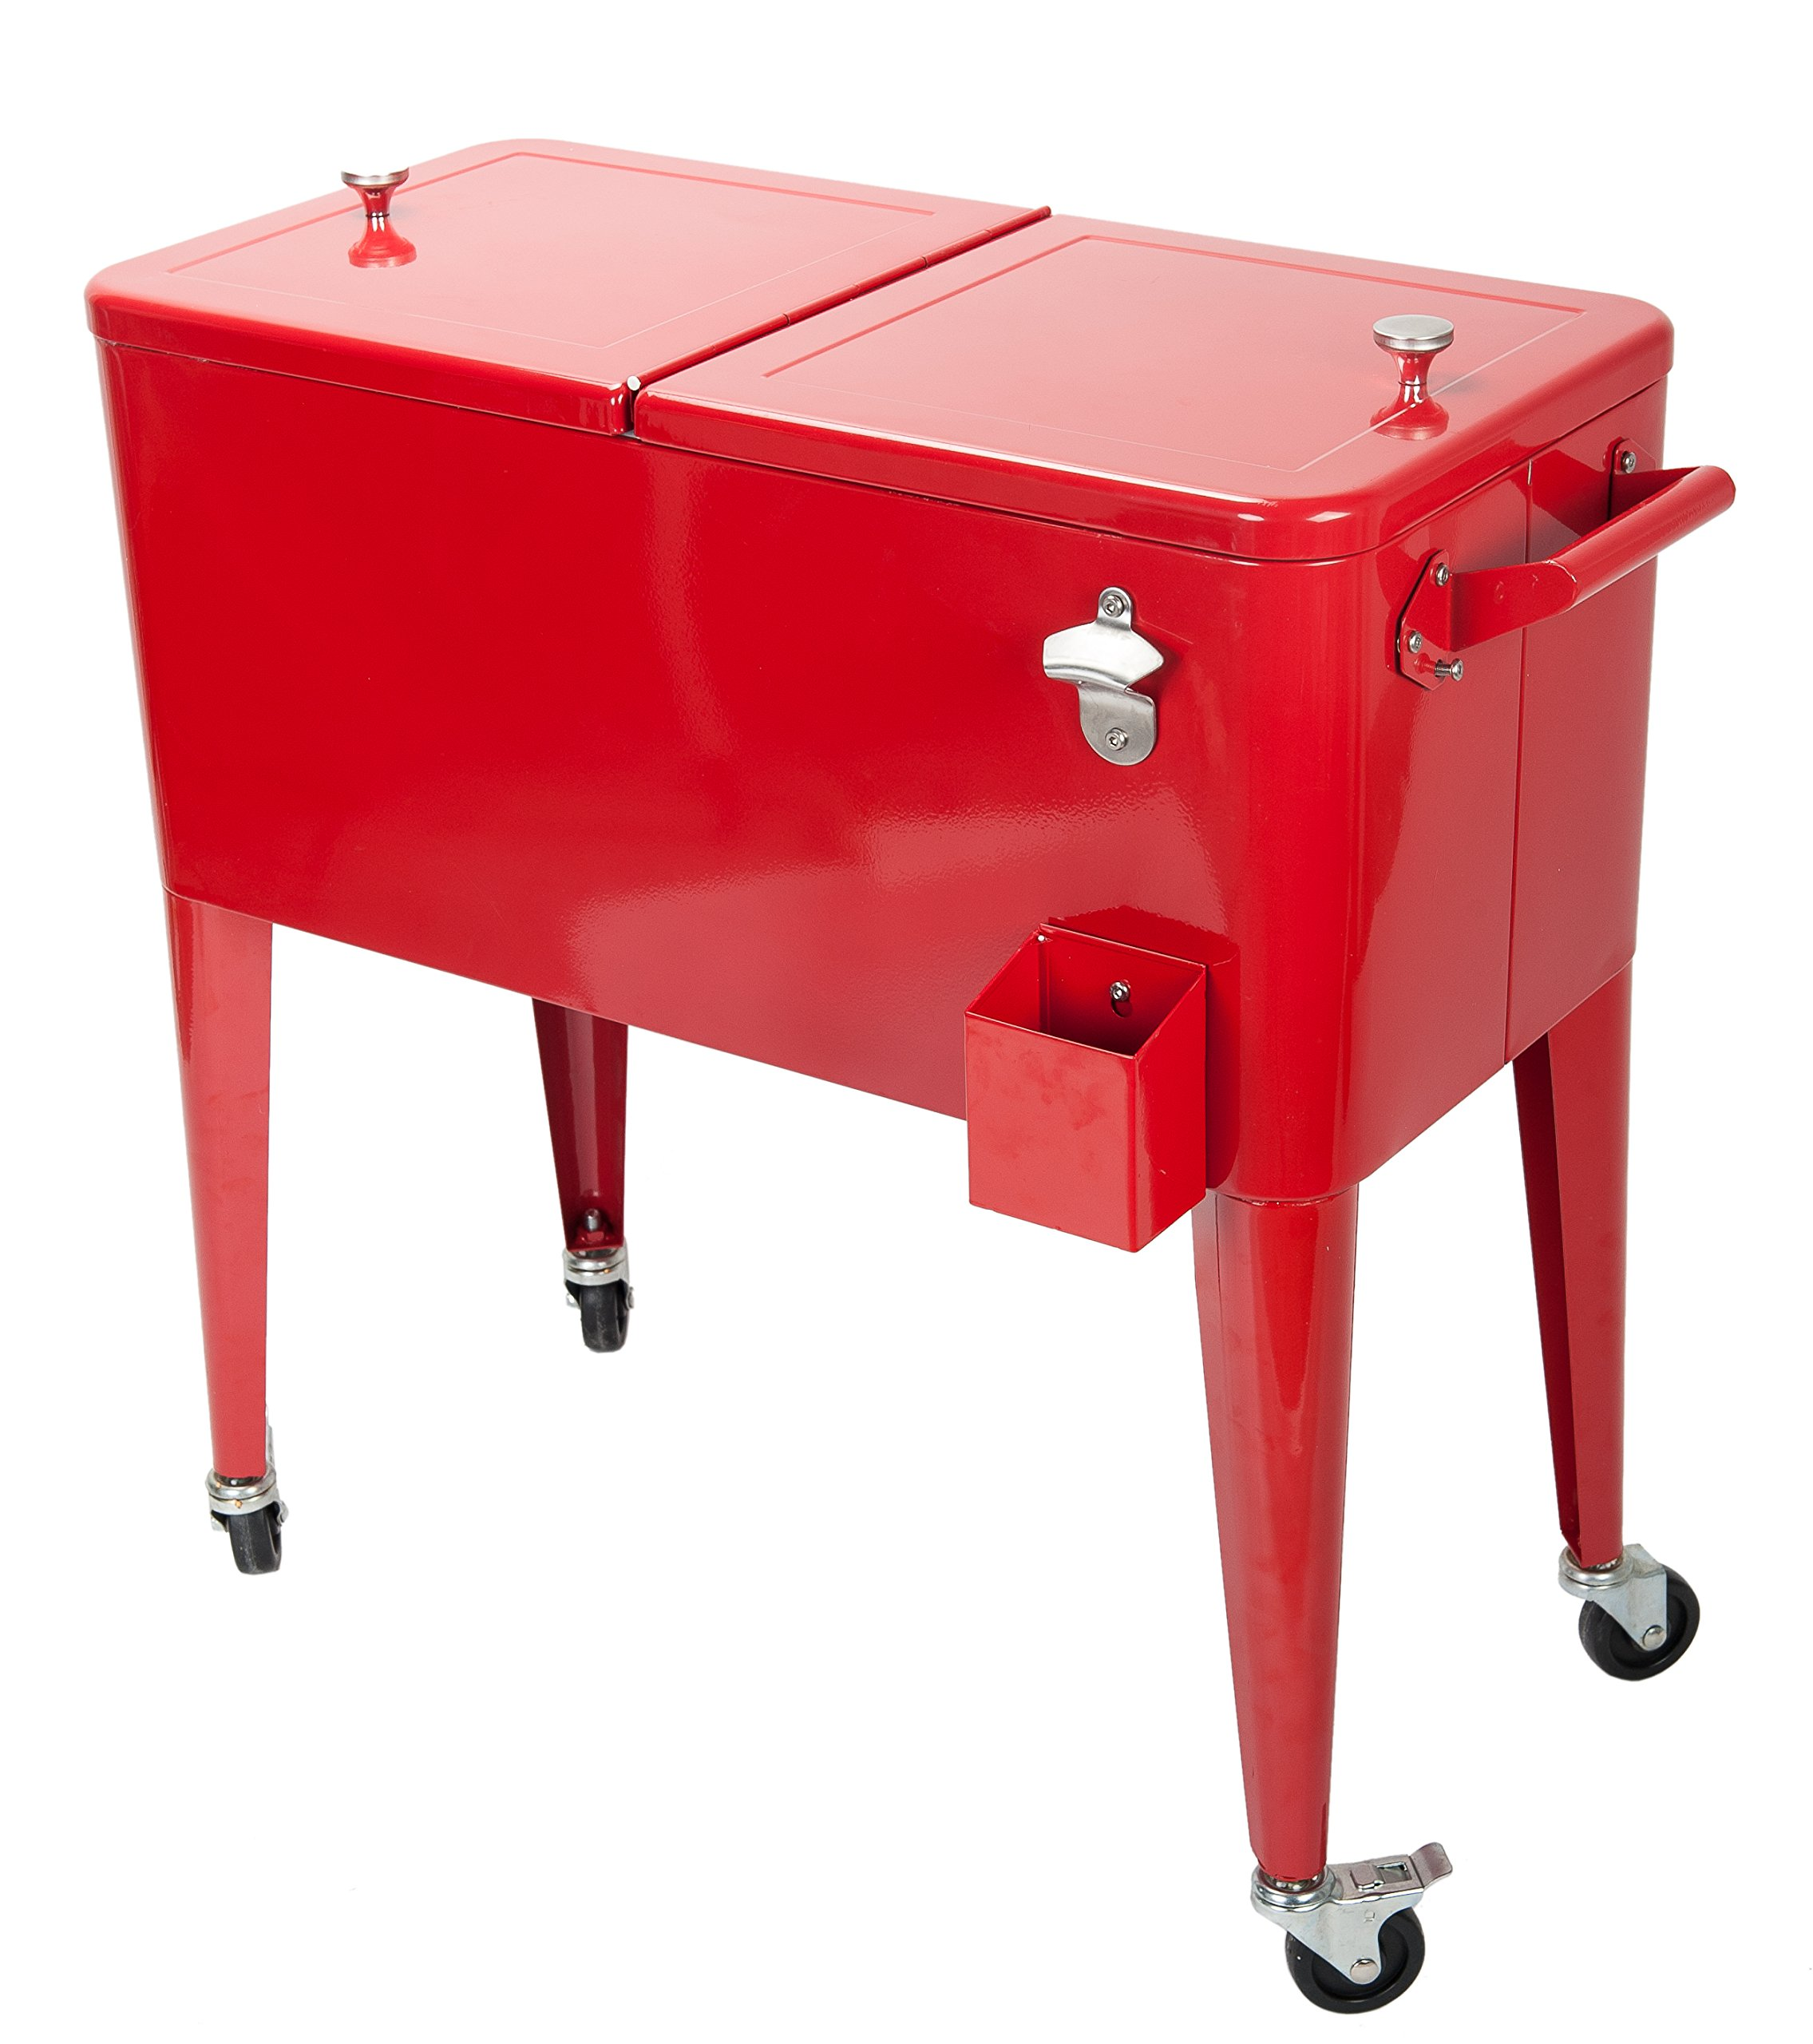 HIO 80 Qt. Outdoor Patio Rolling Cooler Table with Bottle Opener, Red